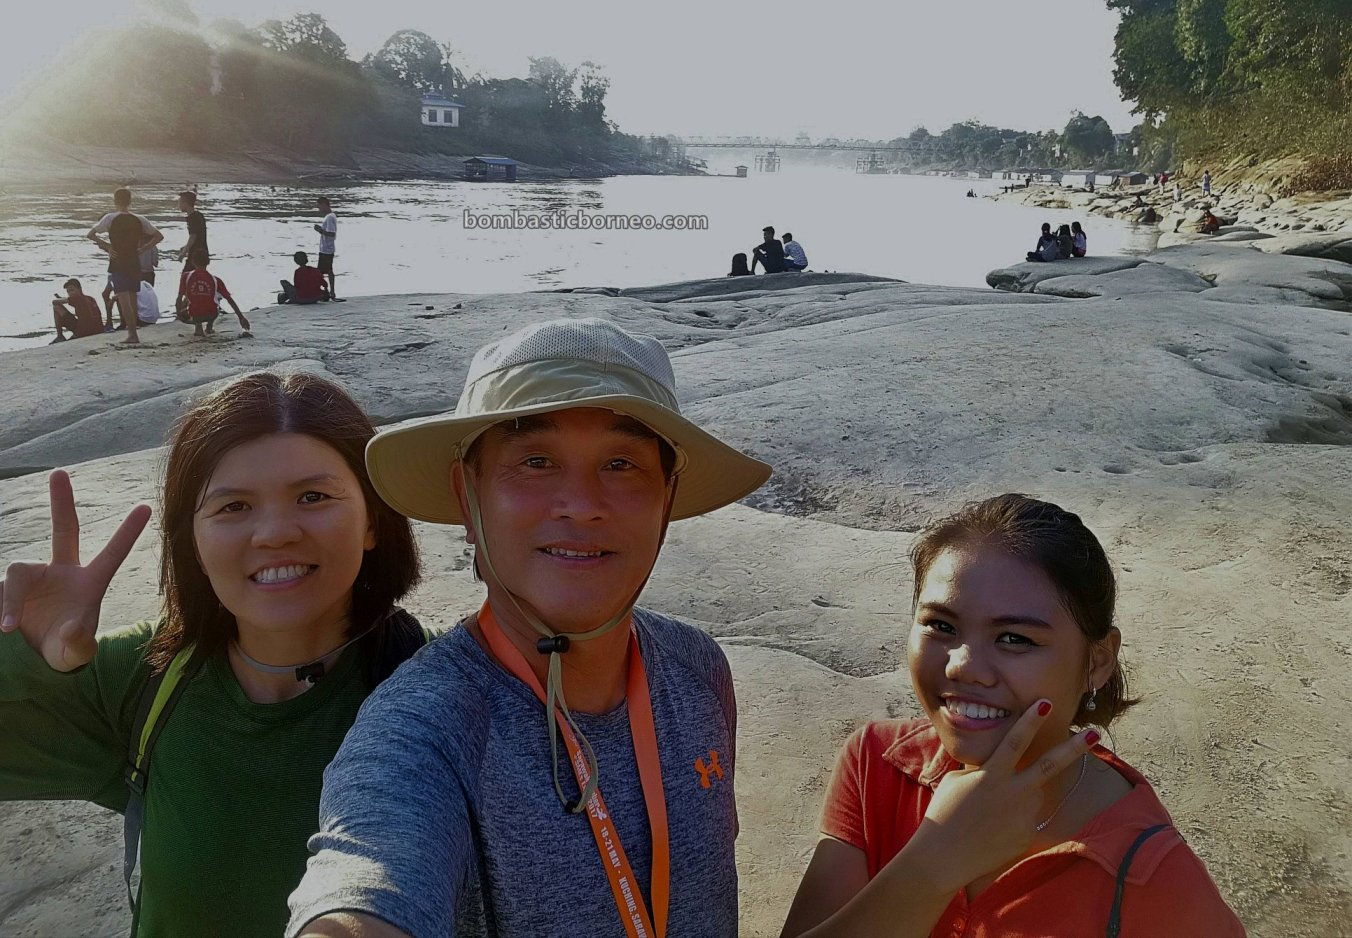 bedrock, Batuan Dasar, authentic, traditional, backpackers, destination, Sungai, Pinoh river, Obyek wisata, Tourism, tourist attraction, Cross Border, 婆罗洲印尼西加里曼丹, 彬路旅游景点